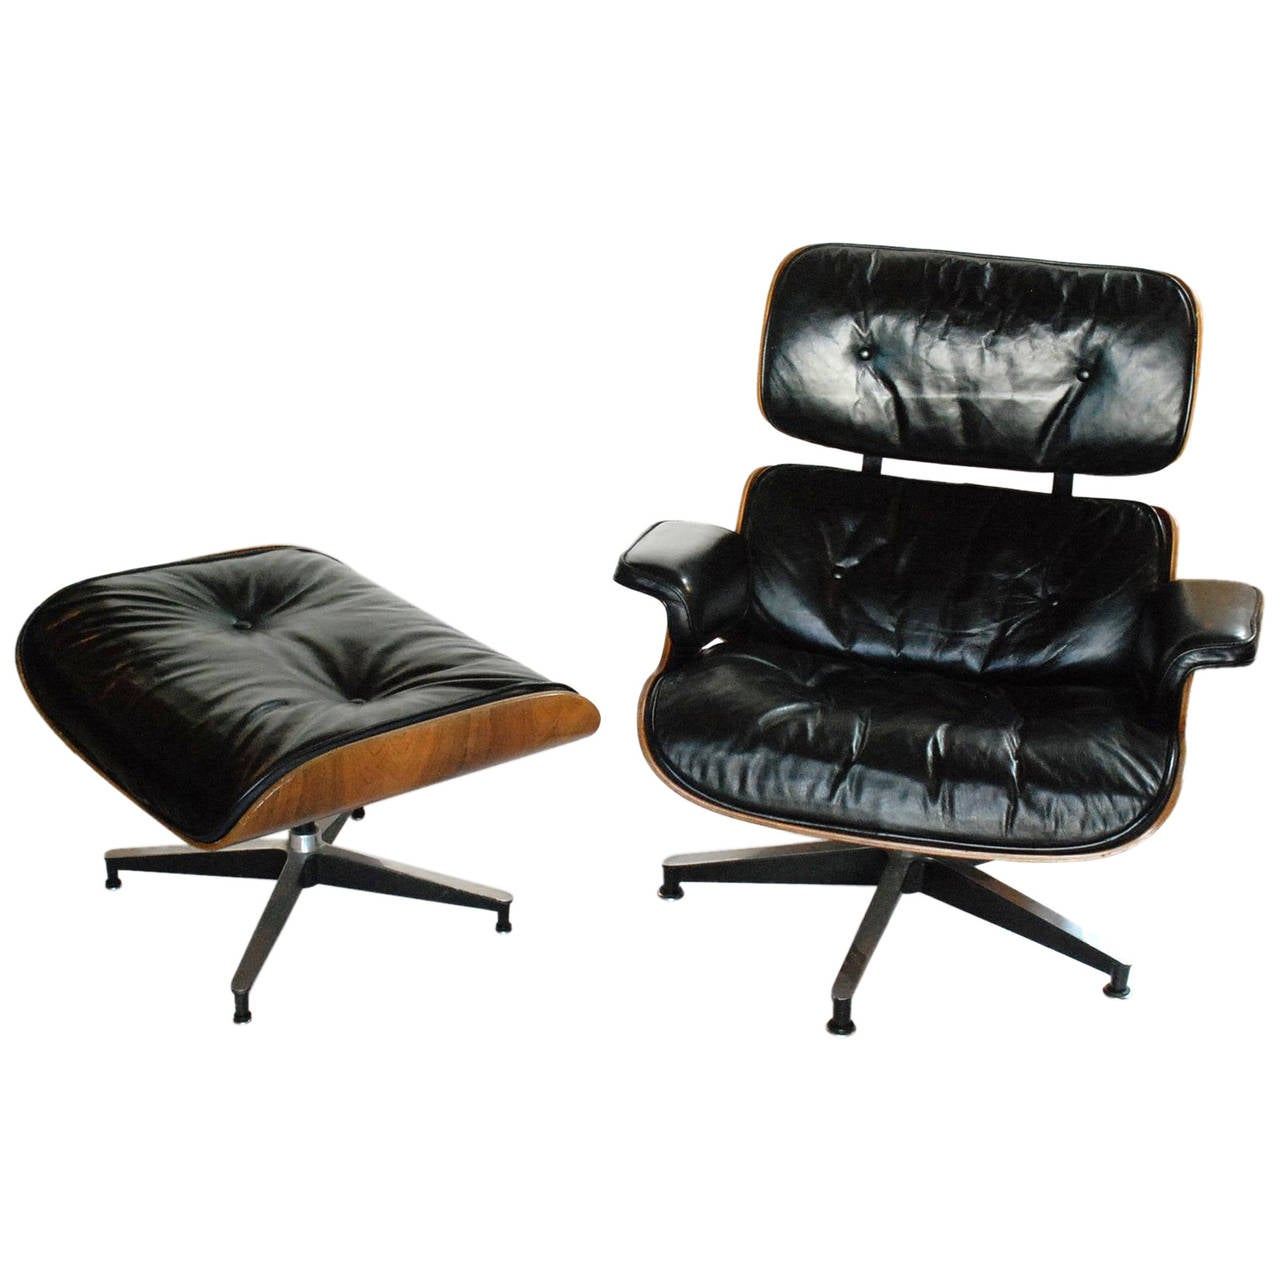 early original eames lounge 670 671 armchair and ottoman. Black Bedroom Furniture Sets. Home Design Ideas